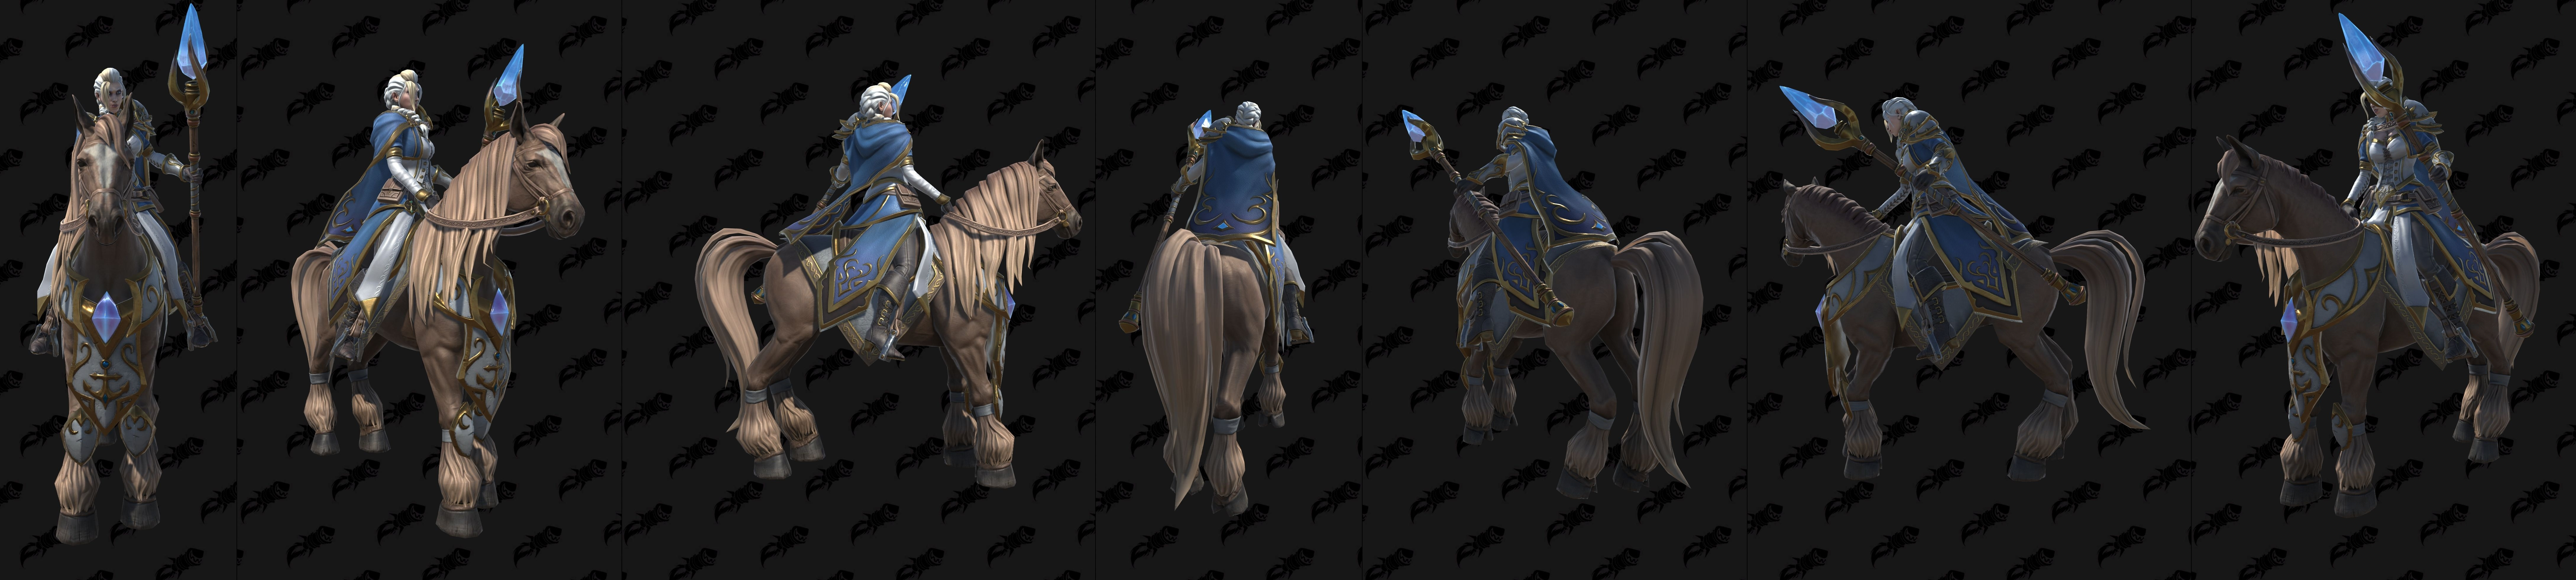 Warcraft Iii Reforged Skins Thrall Champion Of The Horde And